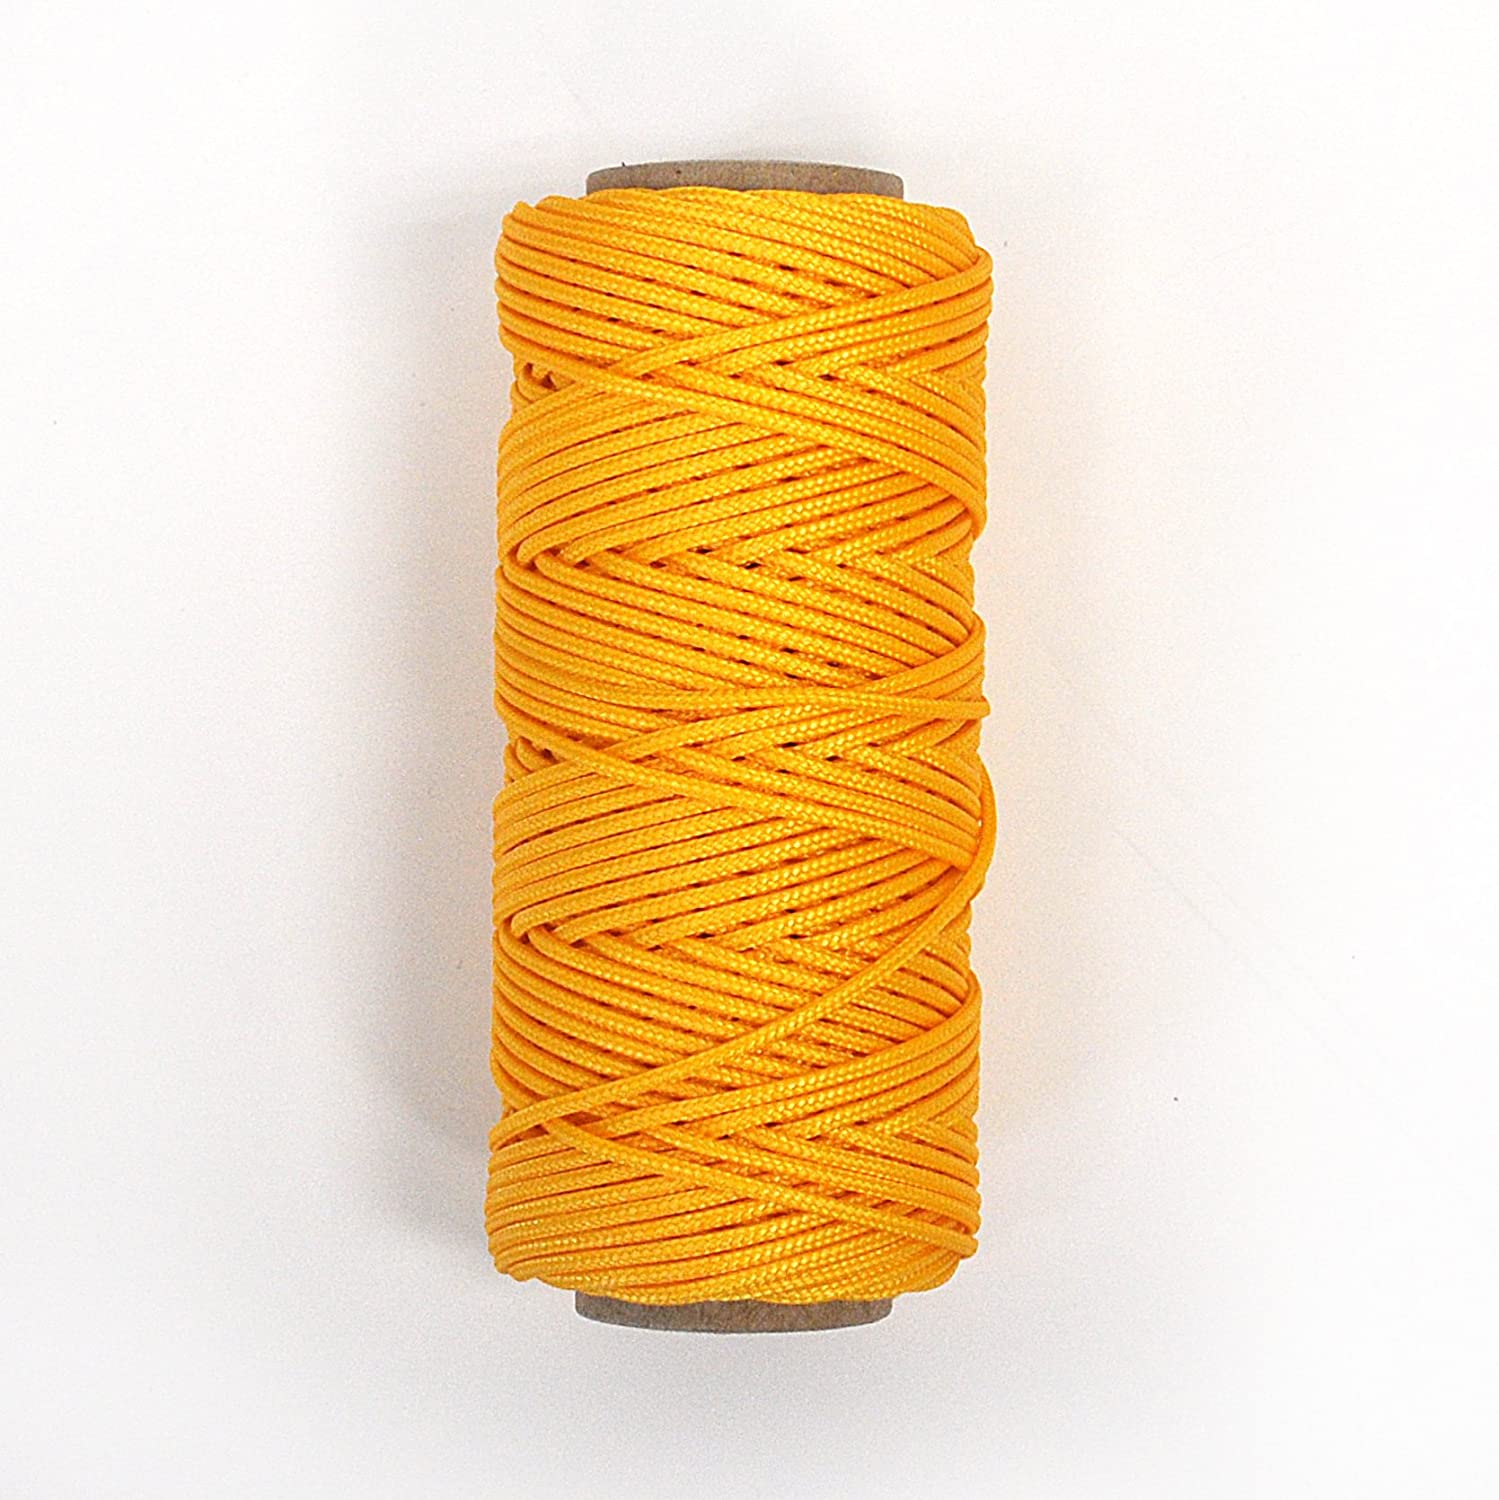 Chrome Yellow 100 foot Spools Accessory /& Utility Cord for Outdoors Handy Hundred Cord 1.4mm - and Knot Tying Craft 2 pack